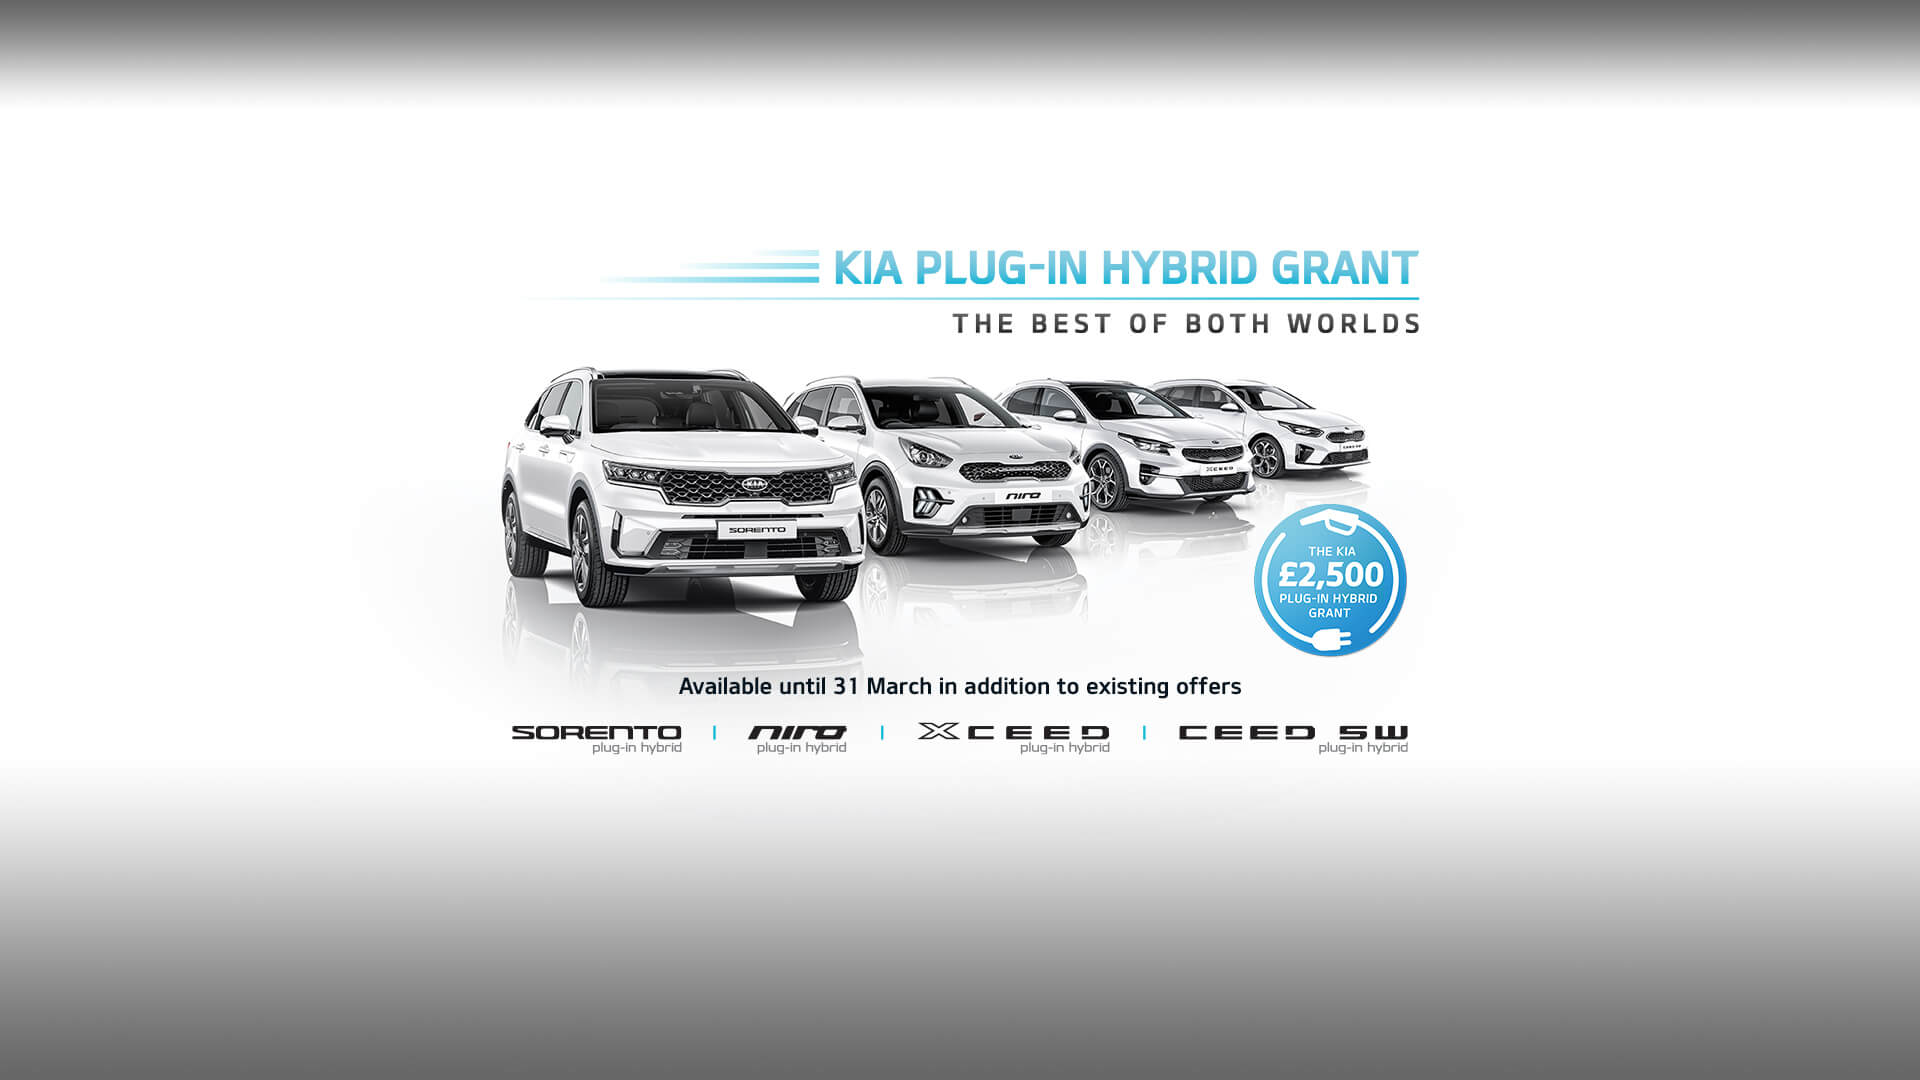 The Kia PHEV Grant